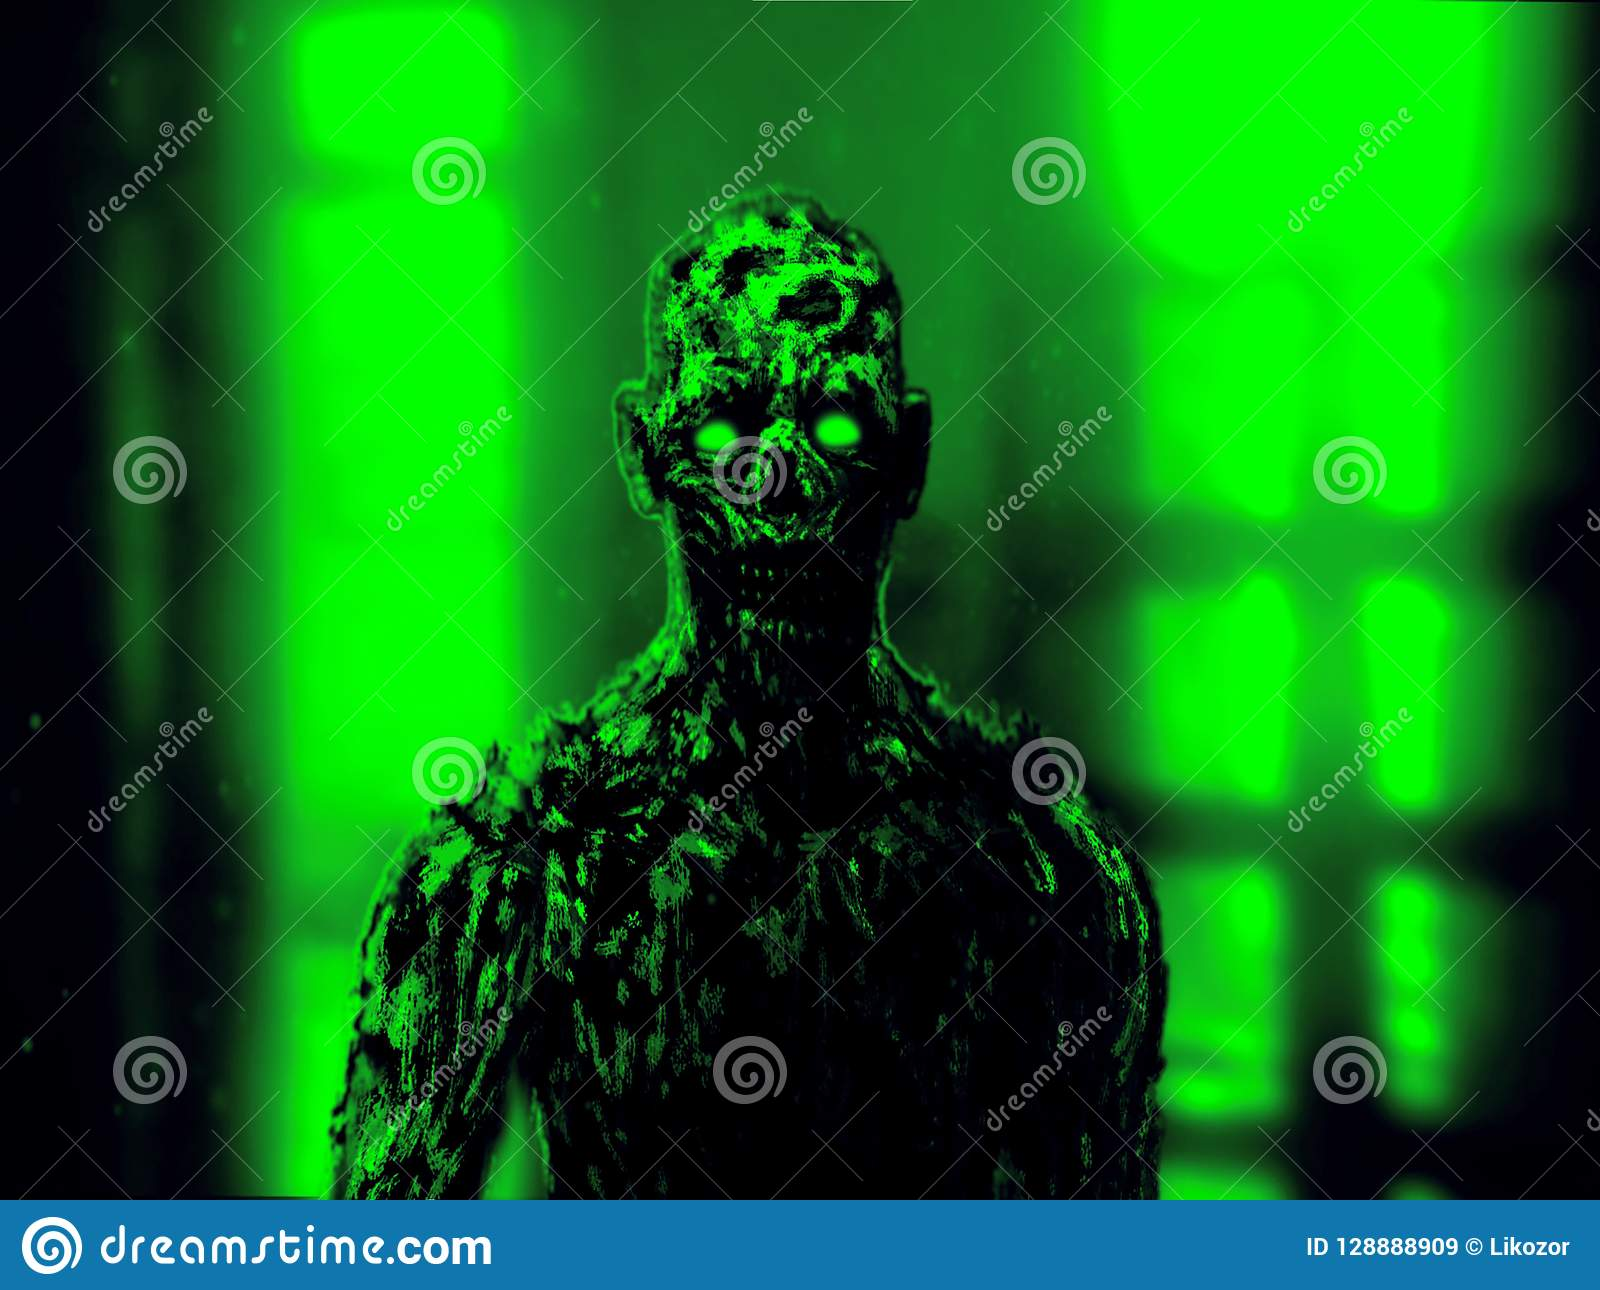 Grim zombie apocalyptic face. Green color.